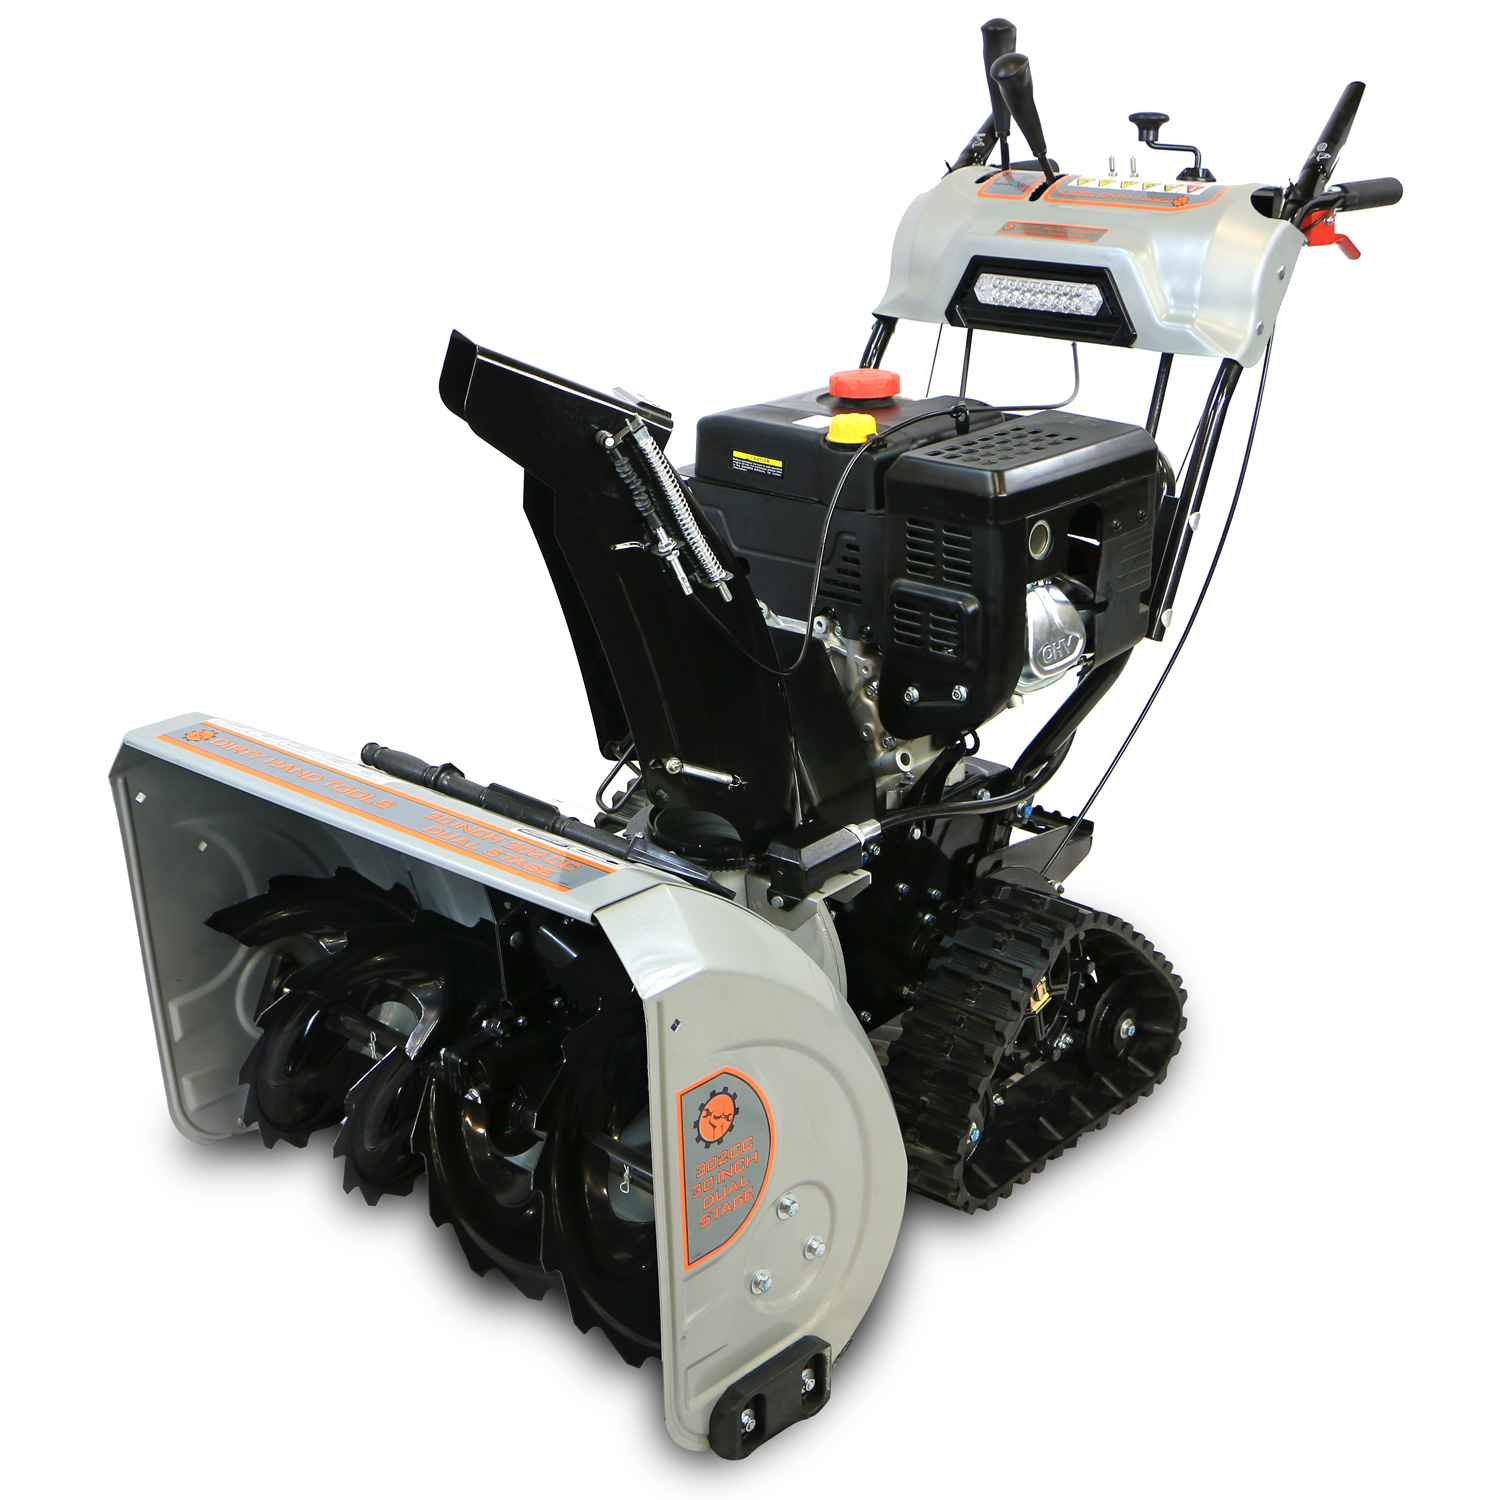 2 Stage Snowblower >> 30″ Dual Stage Snow Blower with Tracks   Dirty Hand Tools